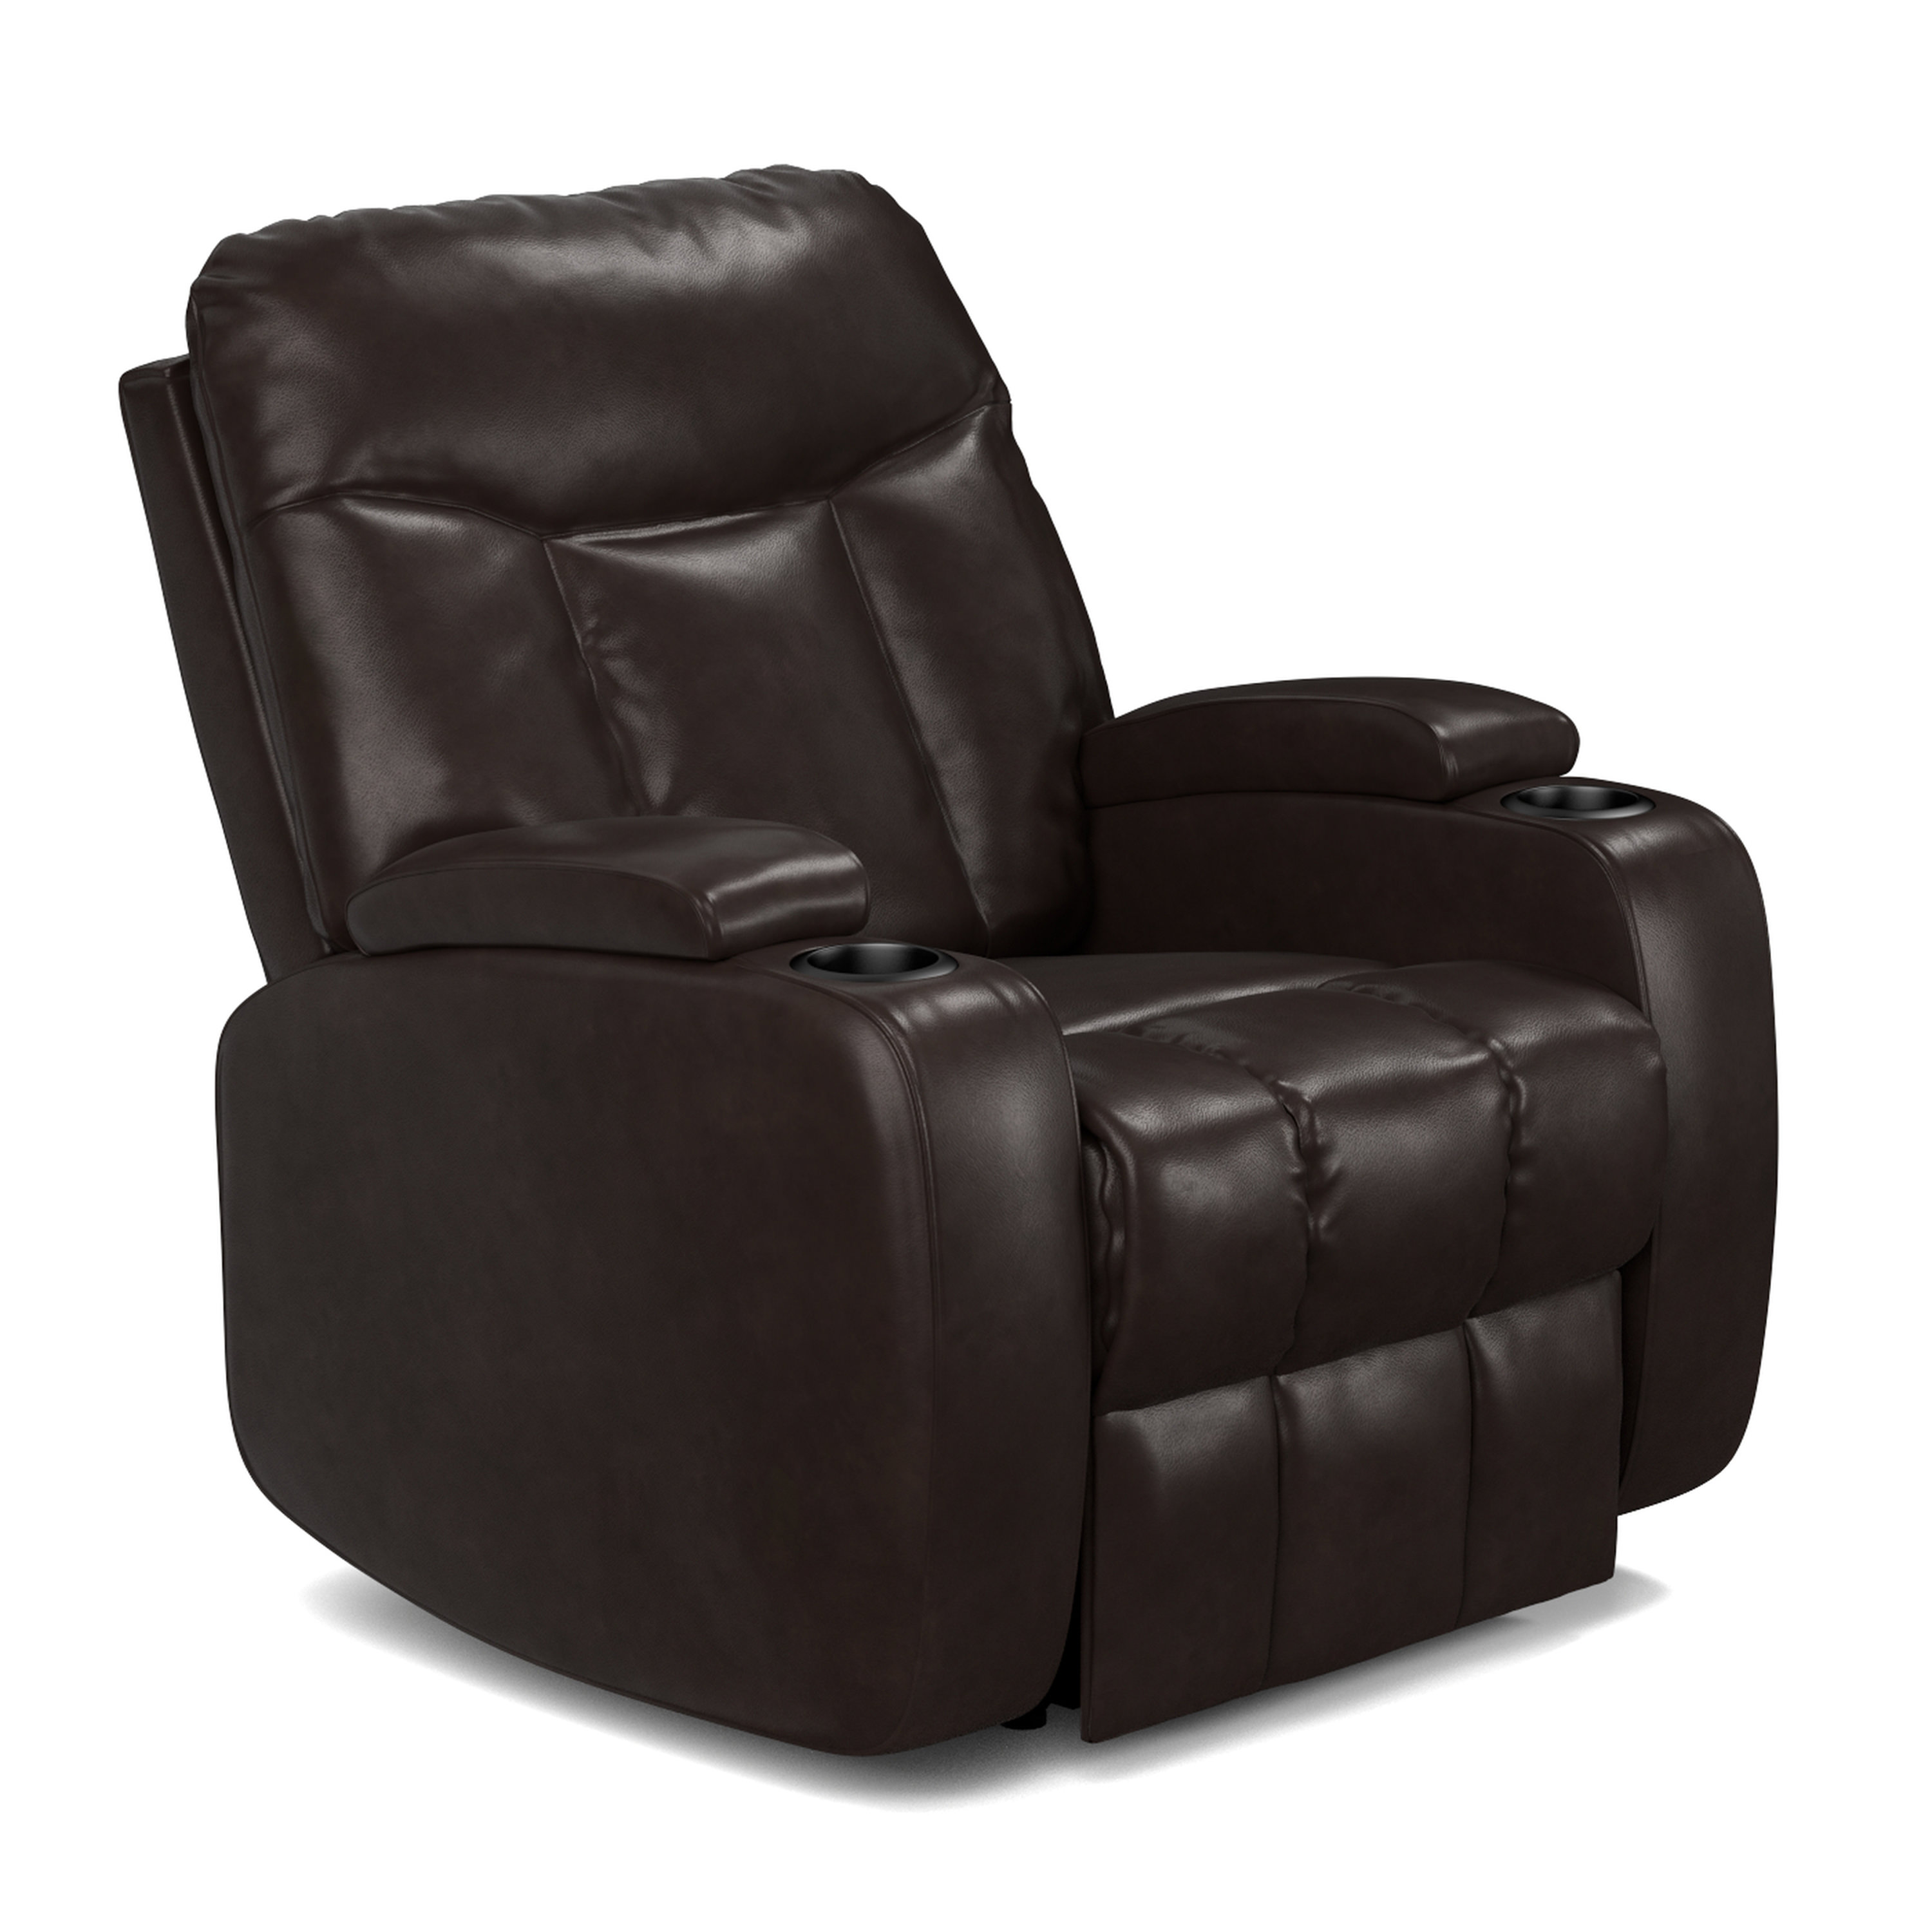 Alton Wall Hugger Storage Recliner Power Chair in Coffee Brown Renu Leather